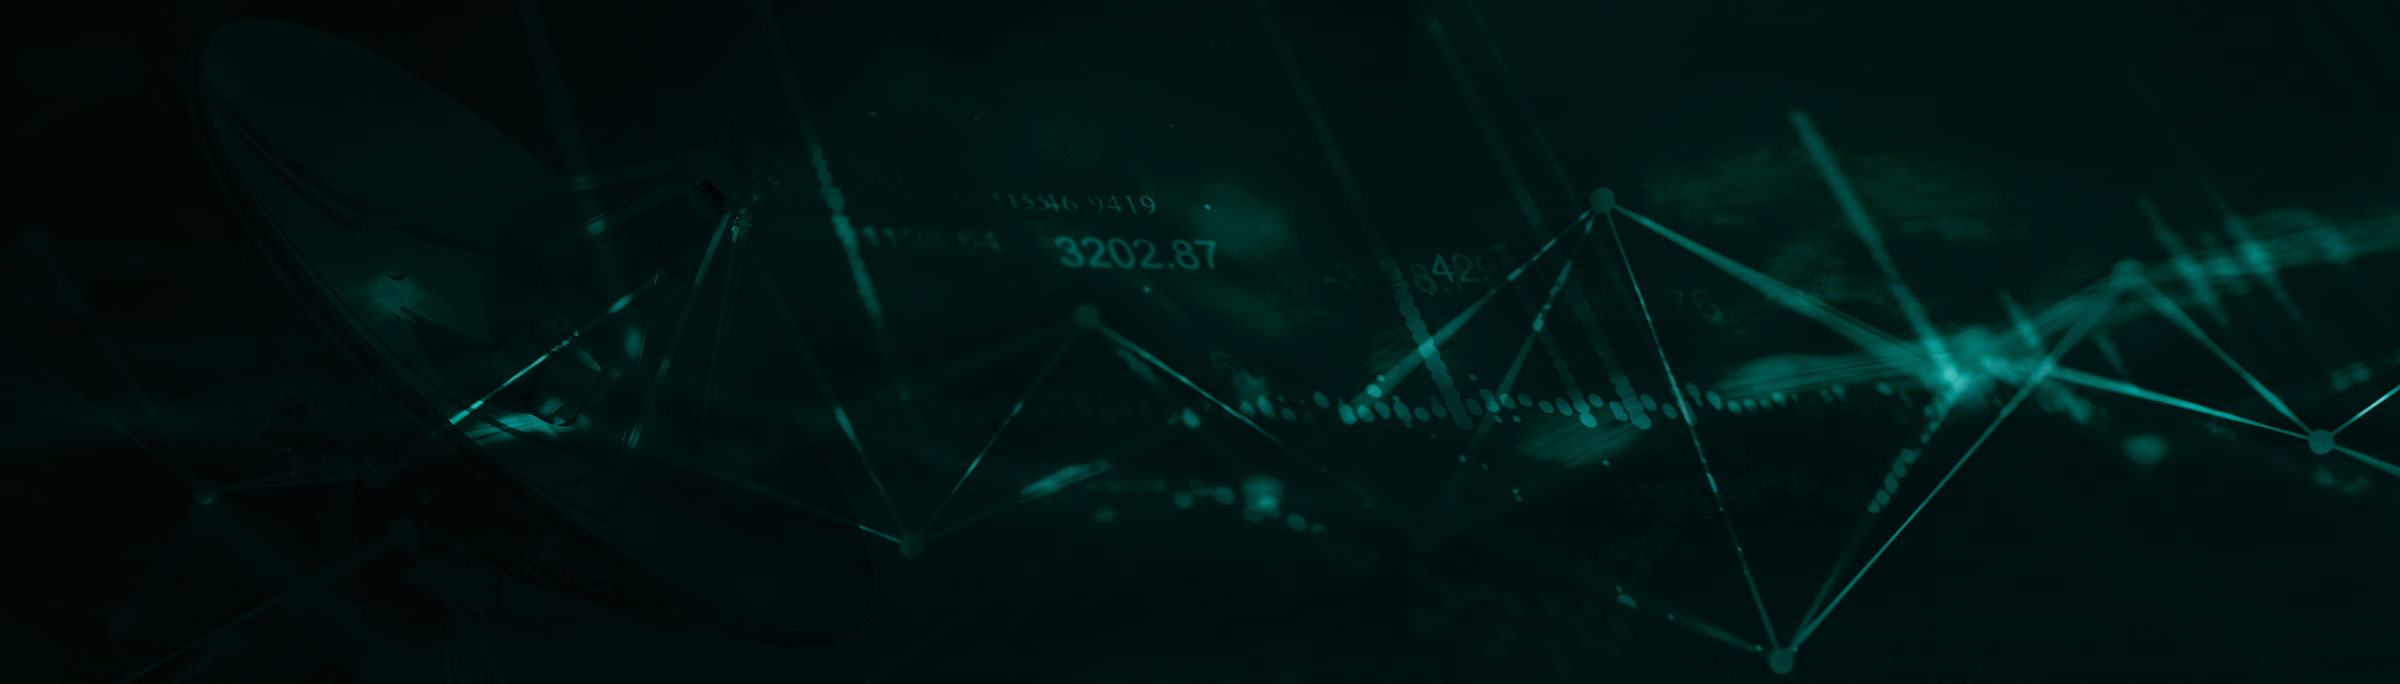 Aize-news-background